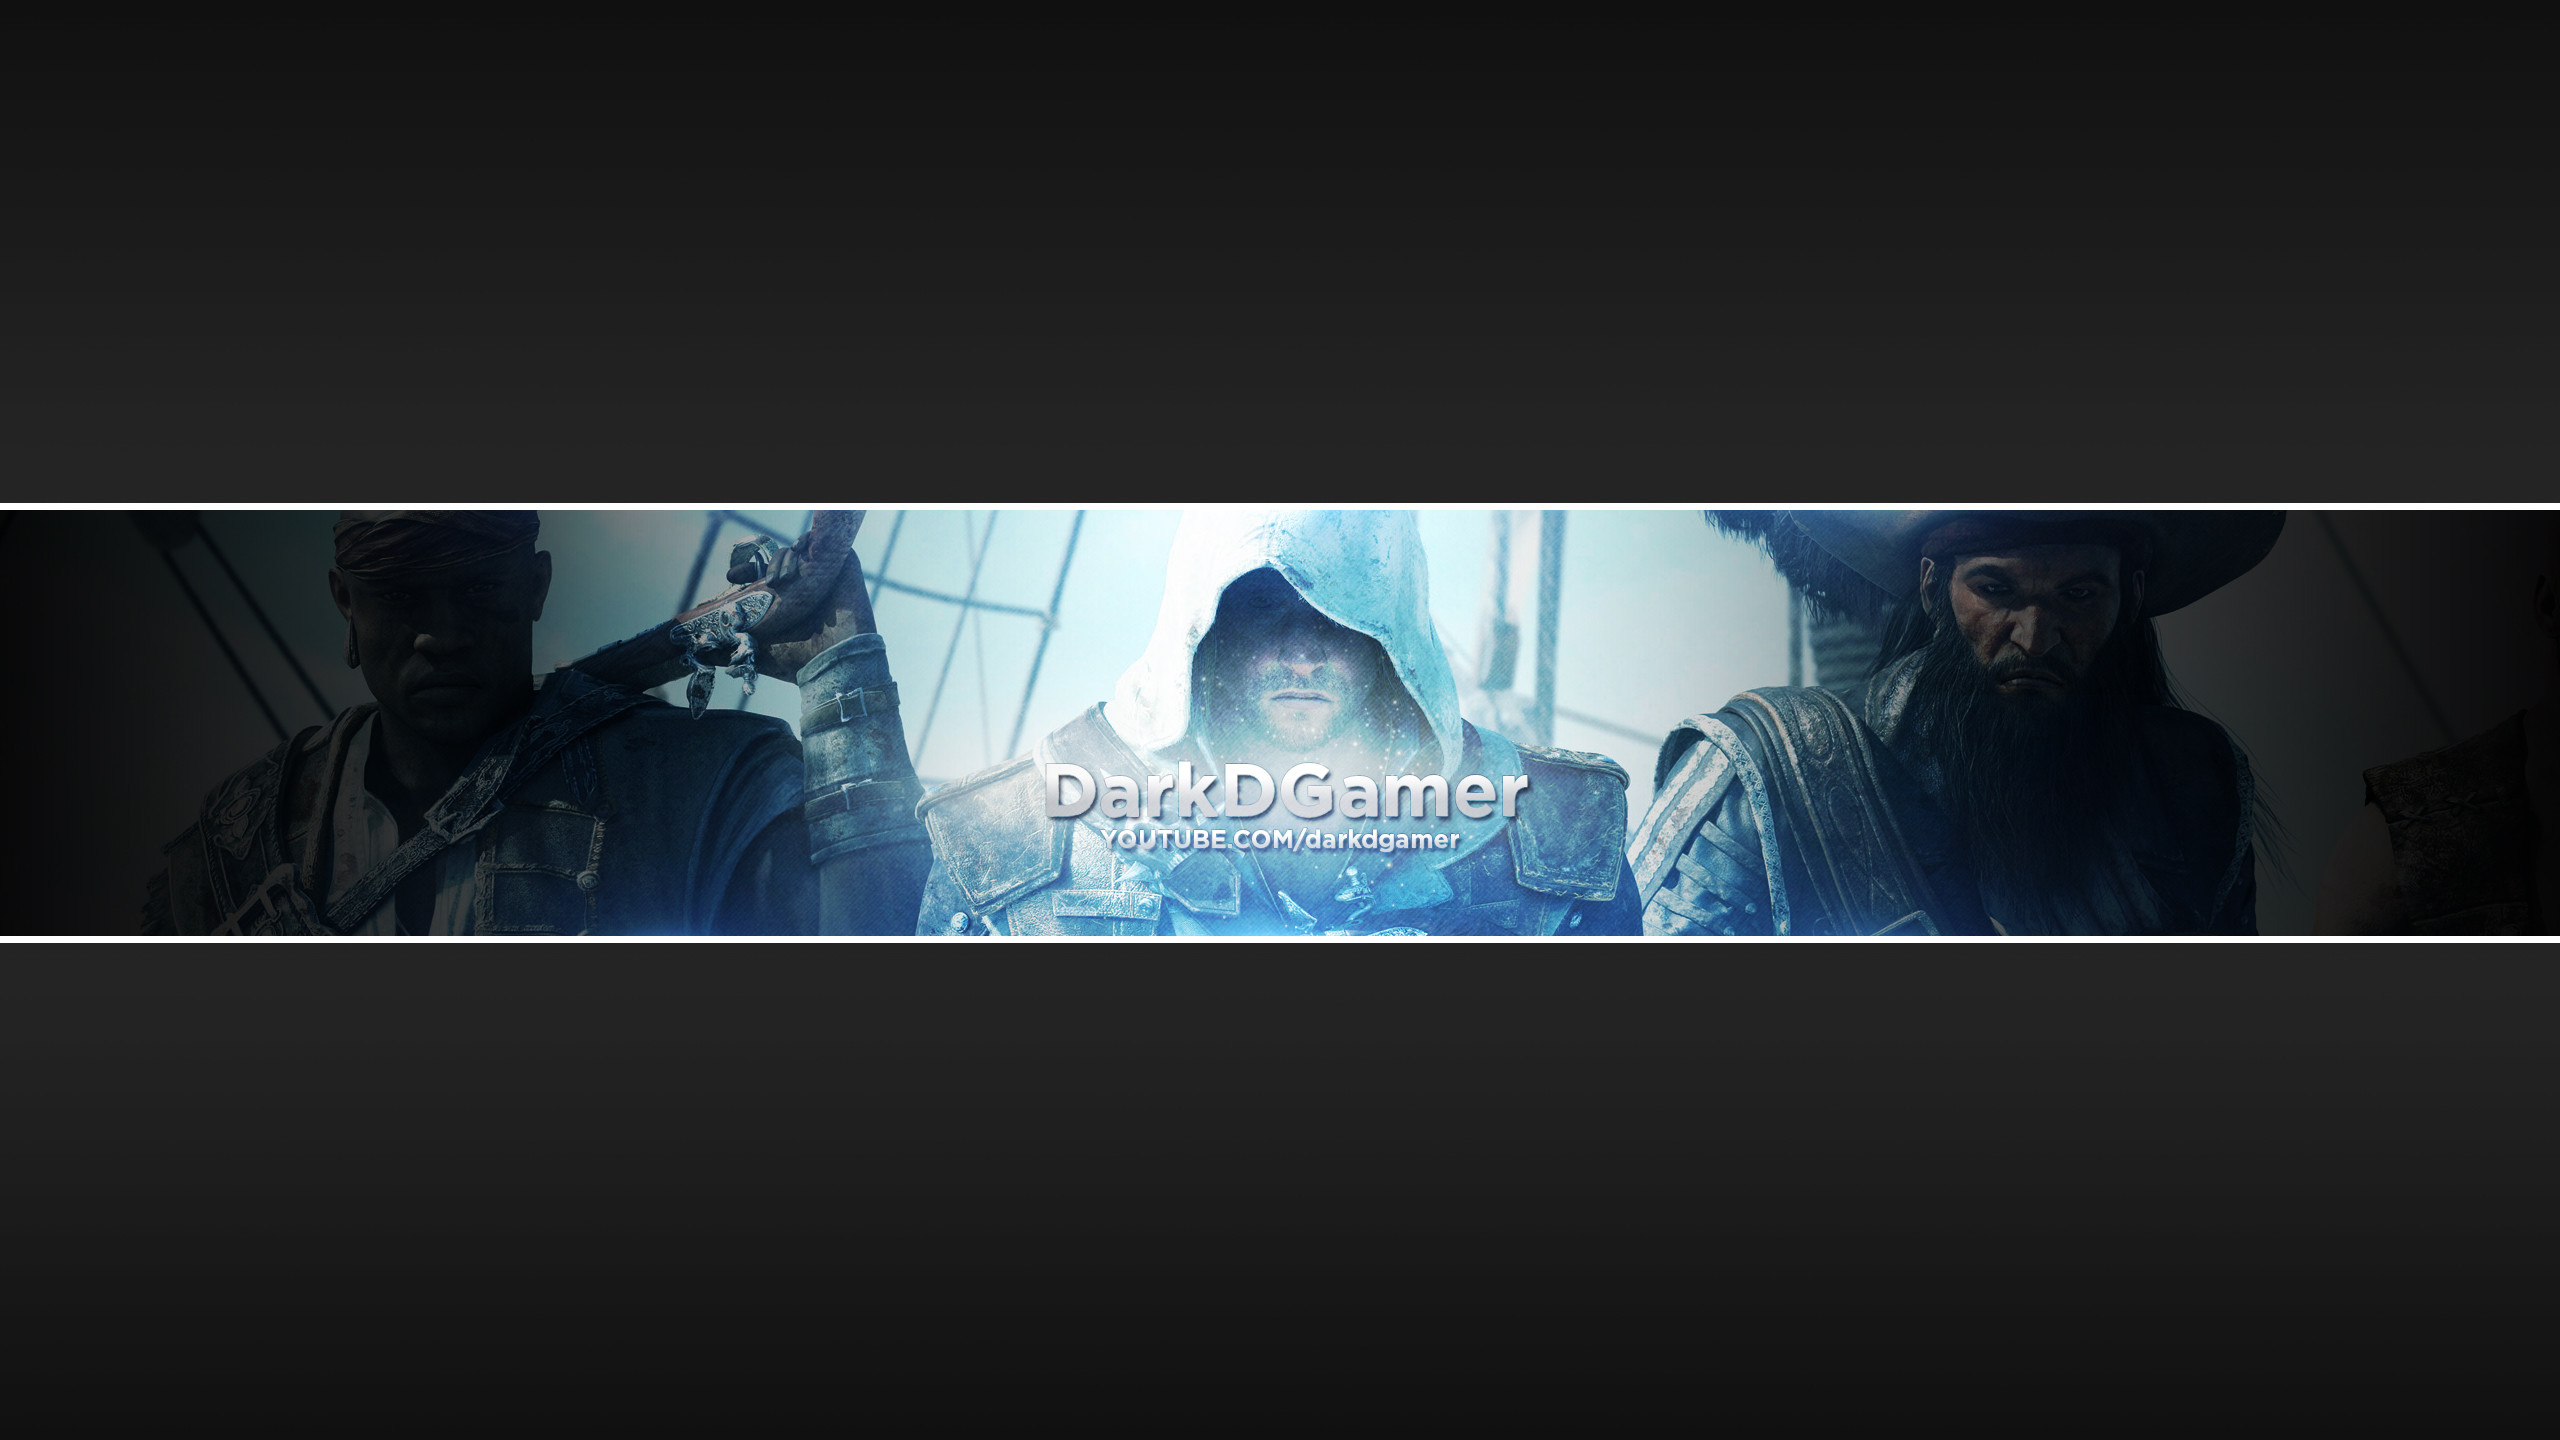 Youtube banner wallpaper 90 images 2560x1440 youtube banner template photoshop cc free download simple 2d youtube pronofoot35fo Choice Image